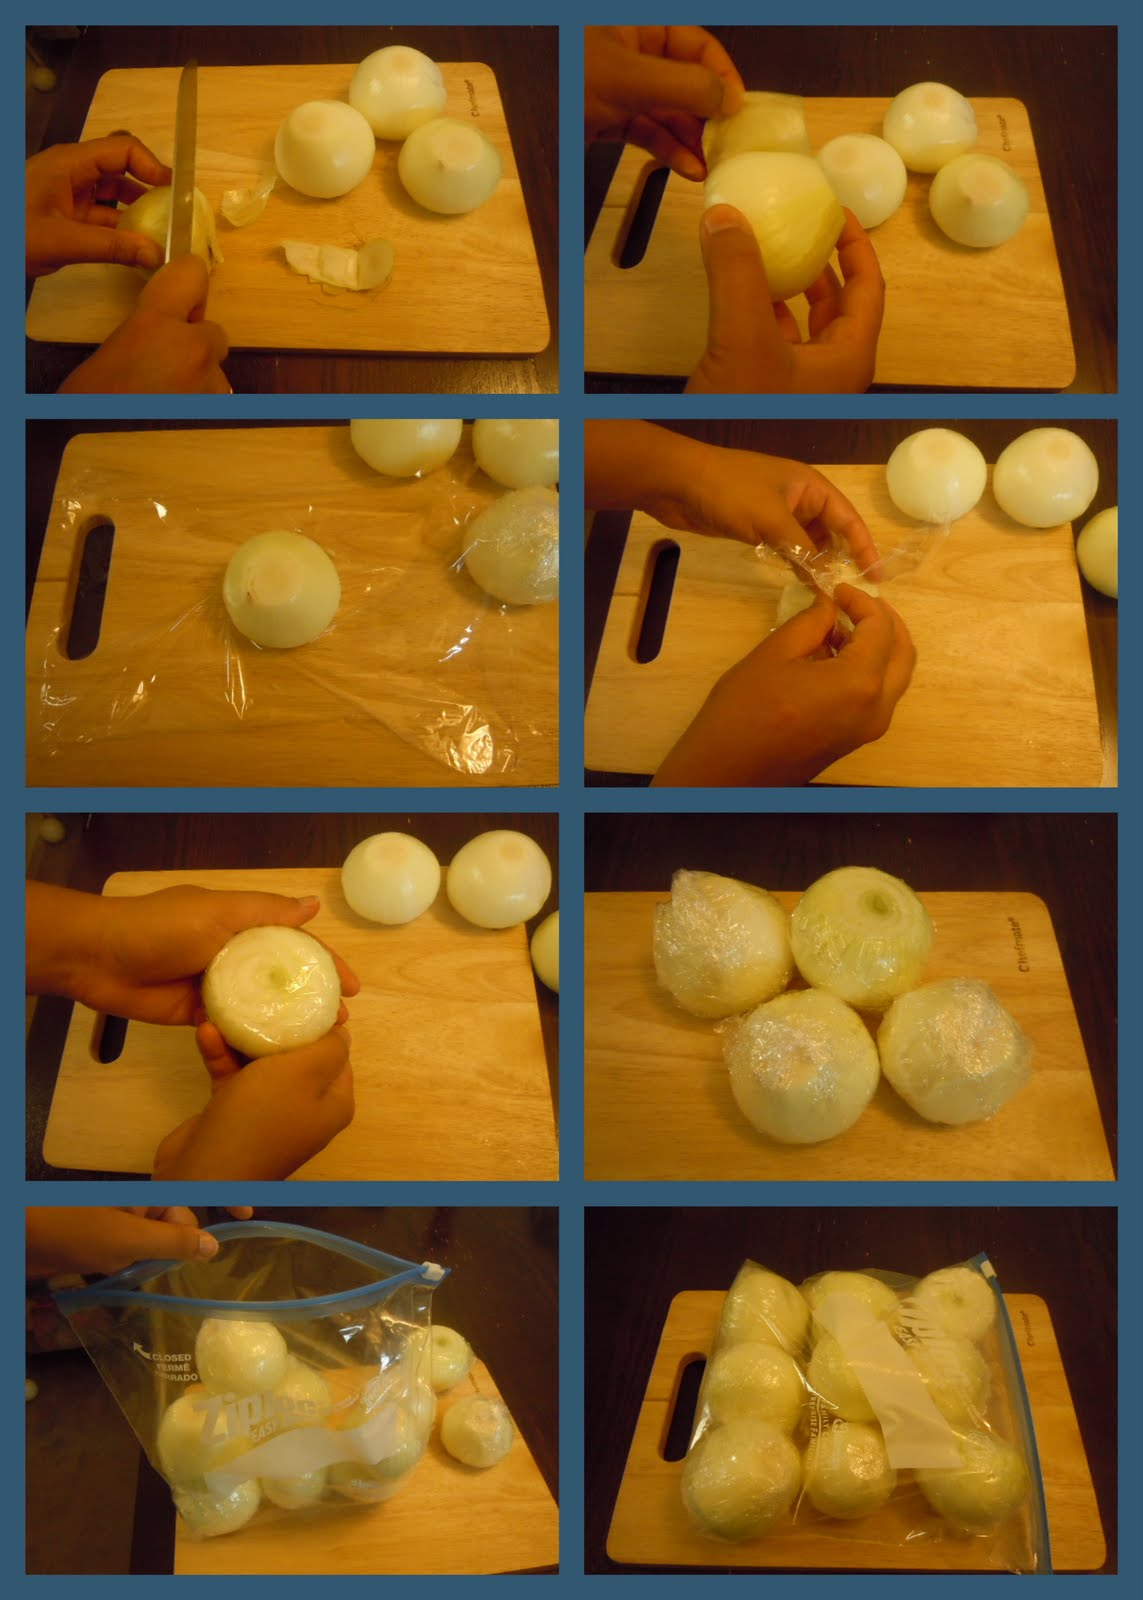 How to Store a Cut Onion